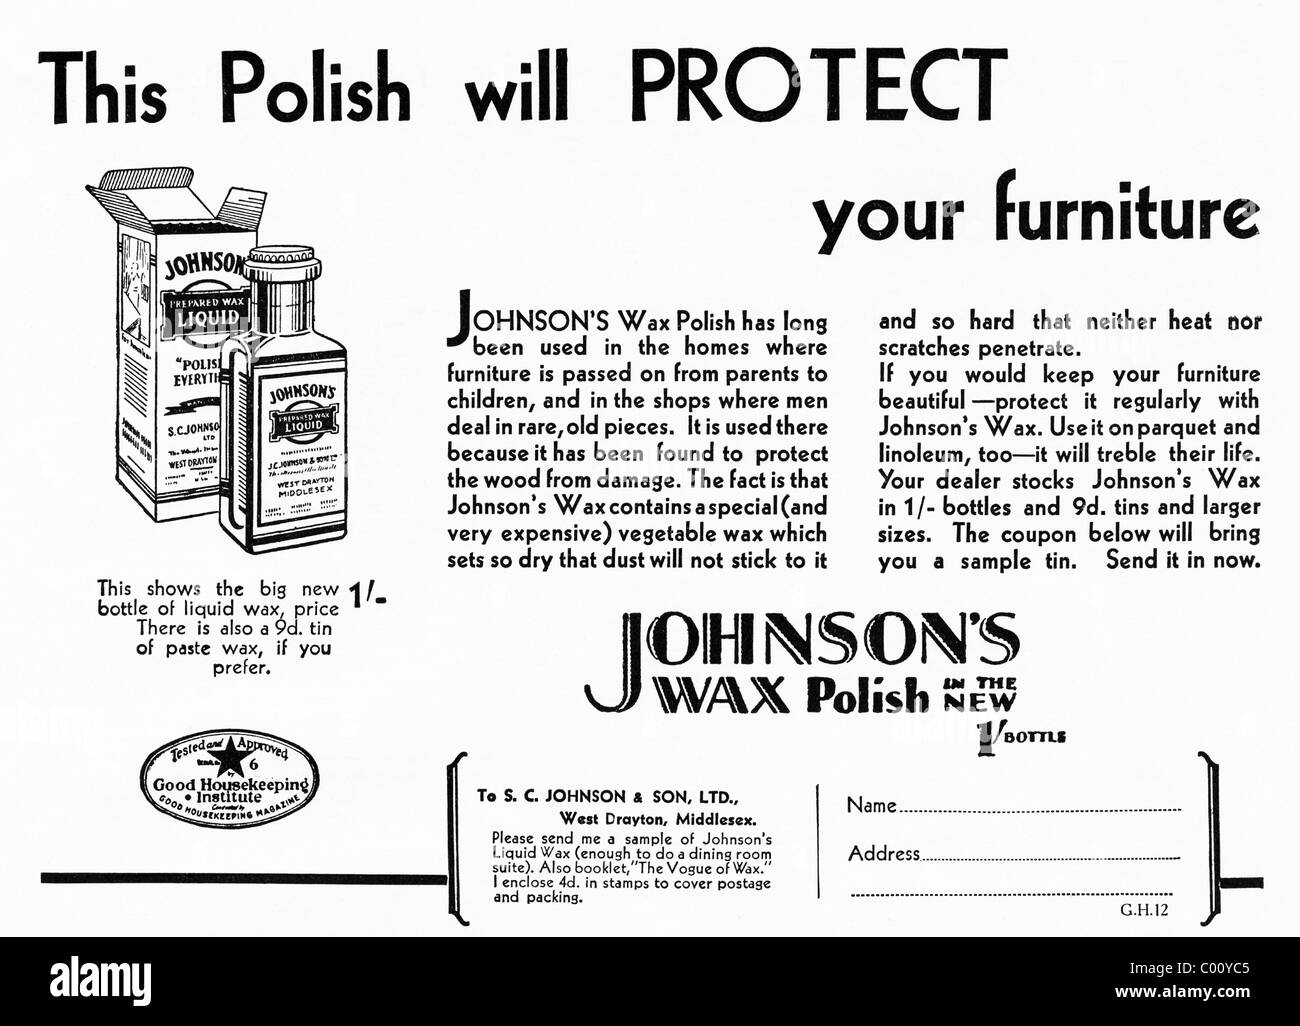 1920s advertisement in consumer magazine for JOHNSON'S WAX POLISH for furniture - Stock Image